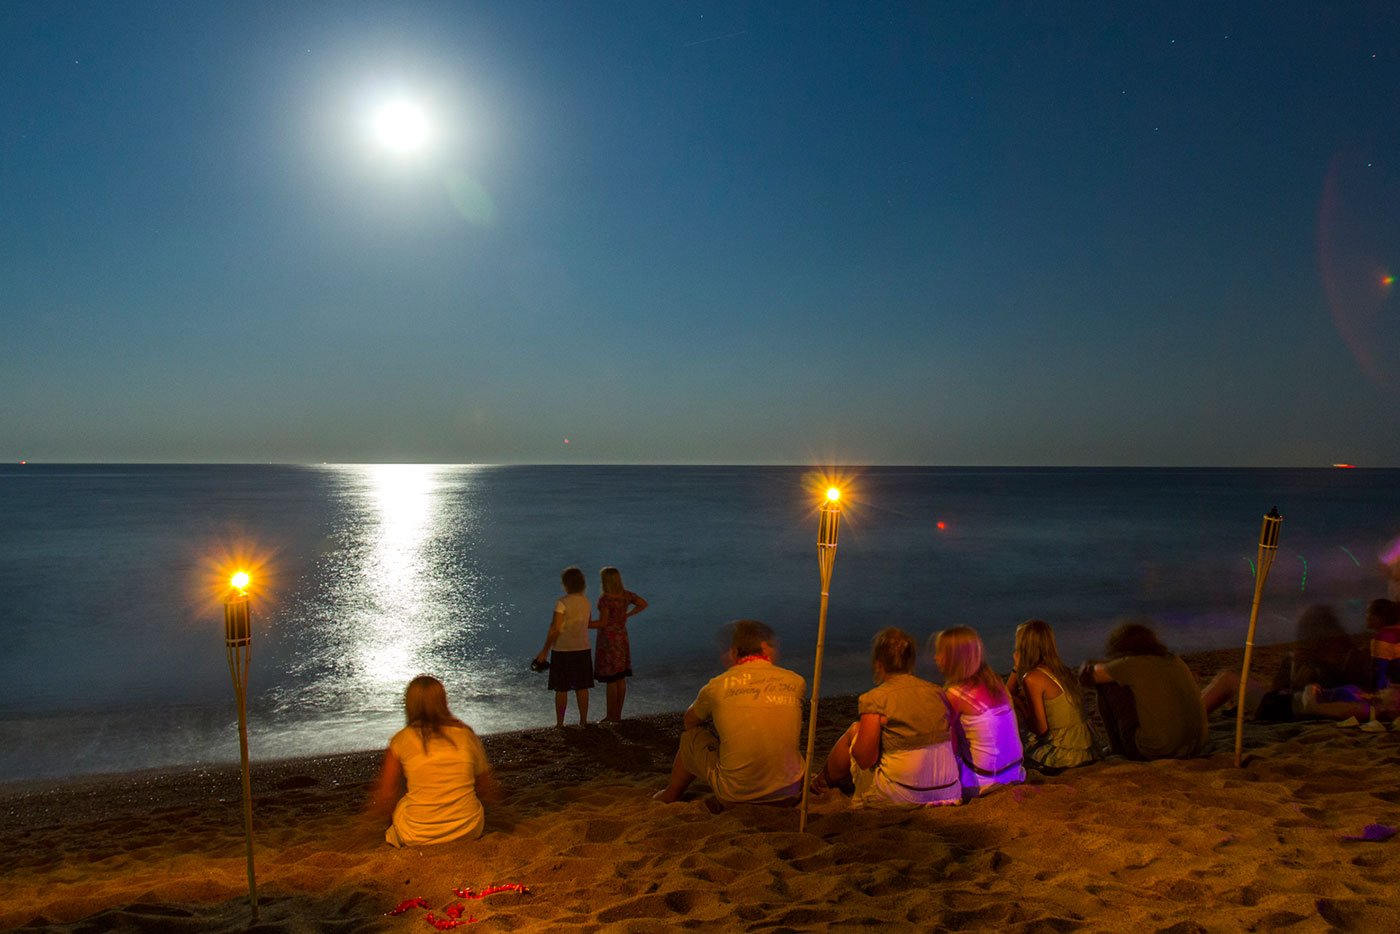 Campsite with night events on the beach. Costa Brava